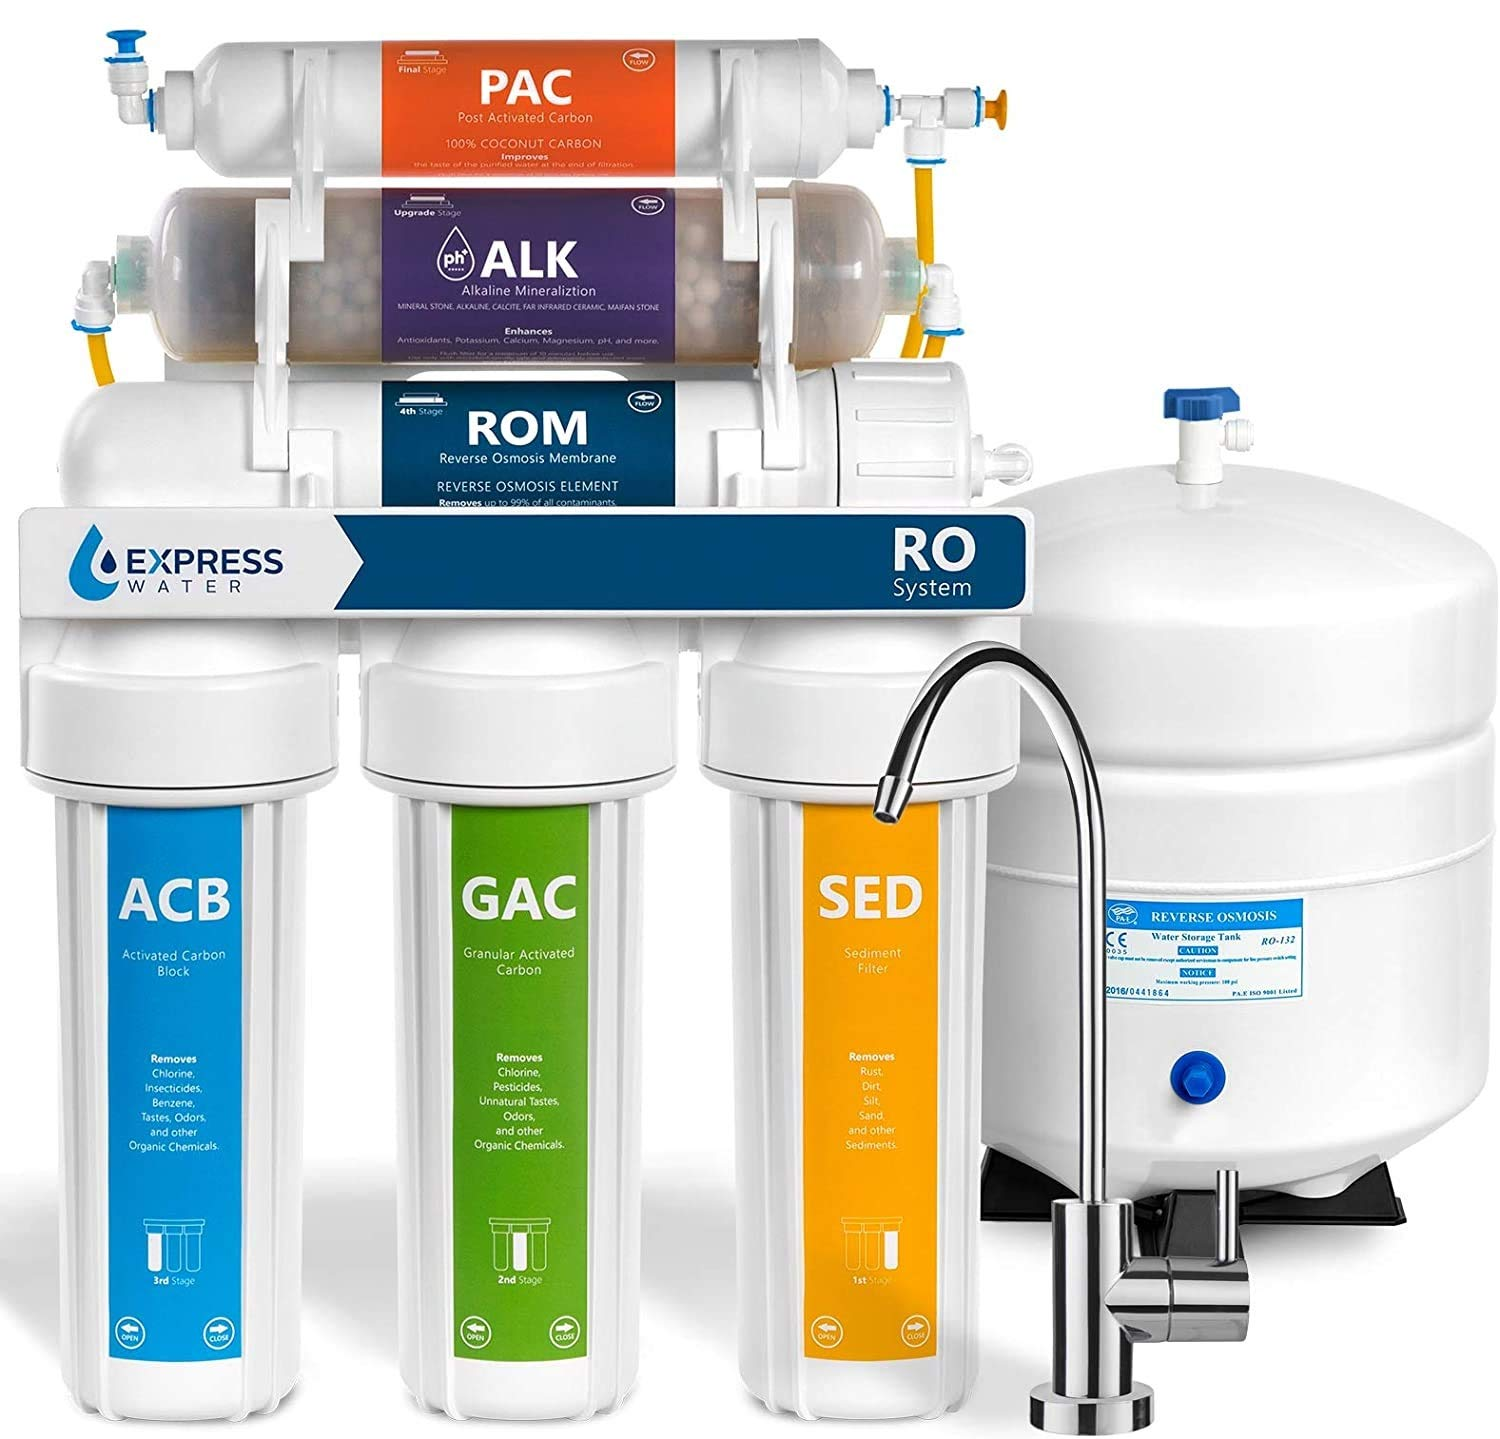 Express Water Max 49% OFF Reverse Osmosis Filtration – System Dallas Mall Alkaline